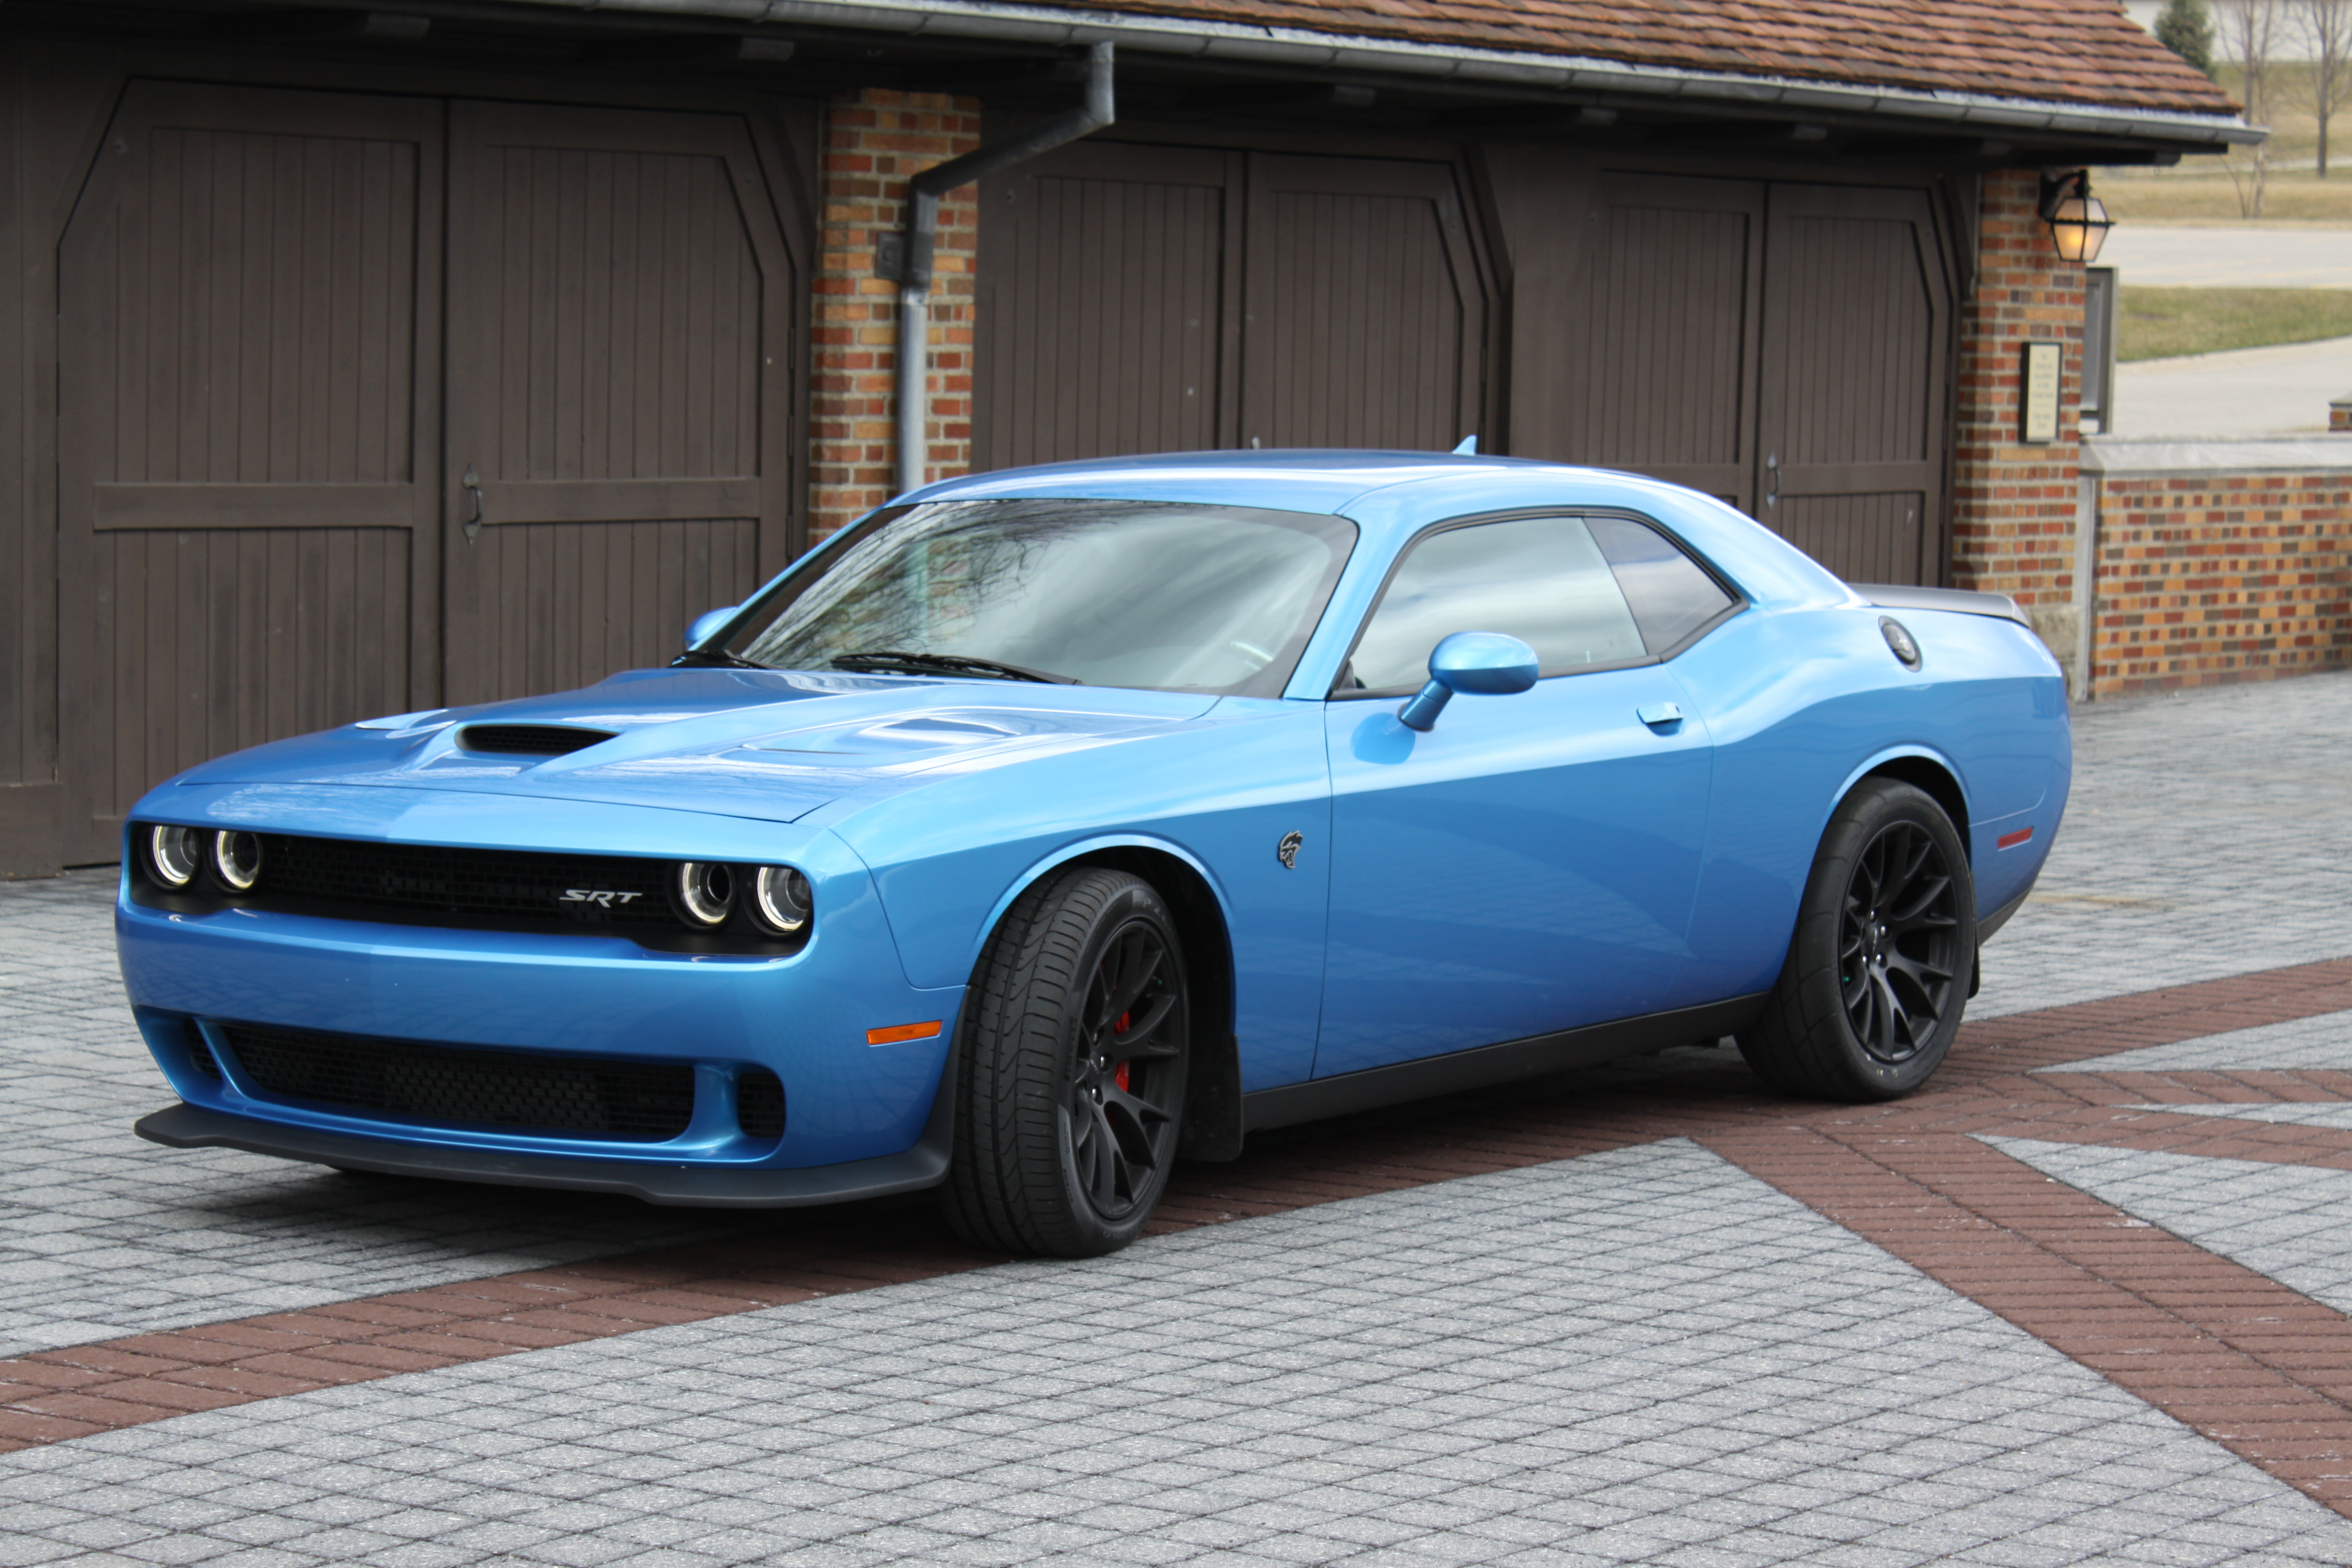 Dodge Challenger Hellcat Blue >> Hellcat Challenger B5 Blue Thoughts And Opinions Please Page